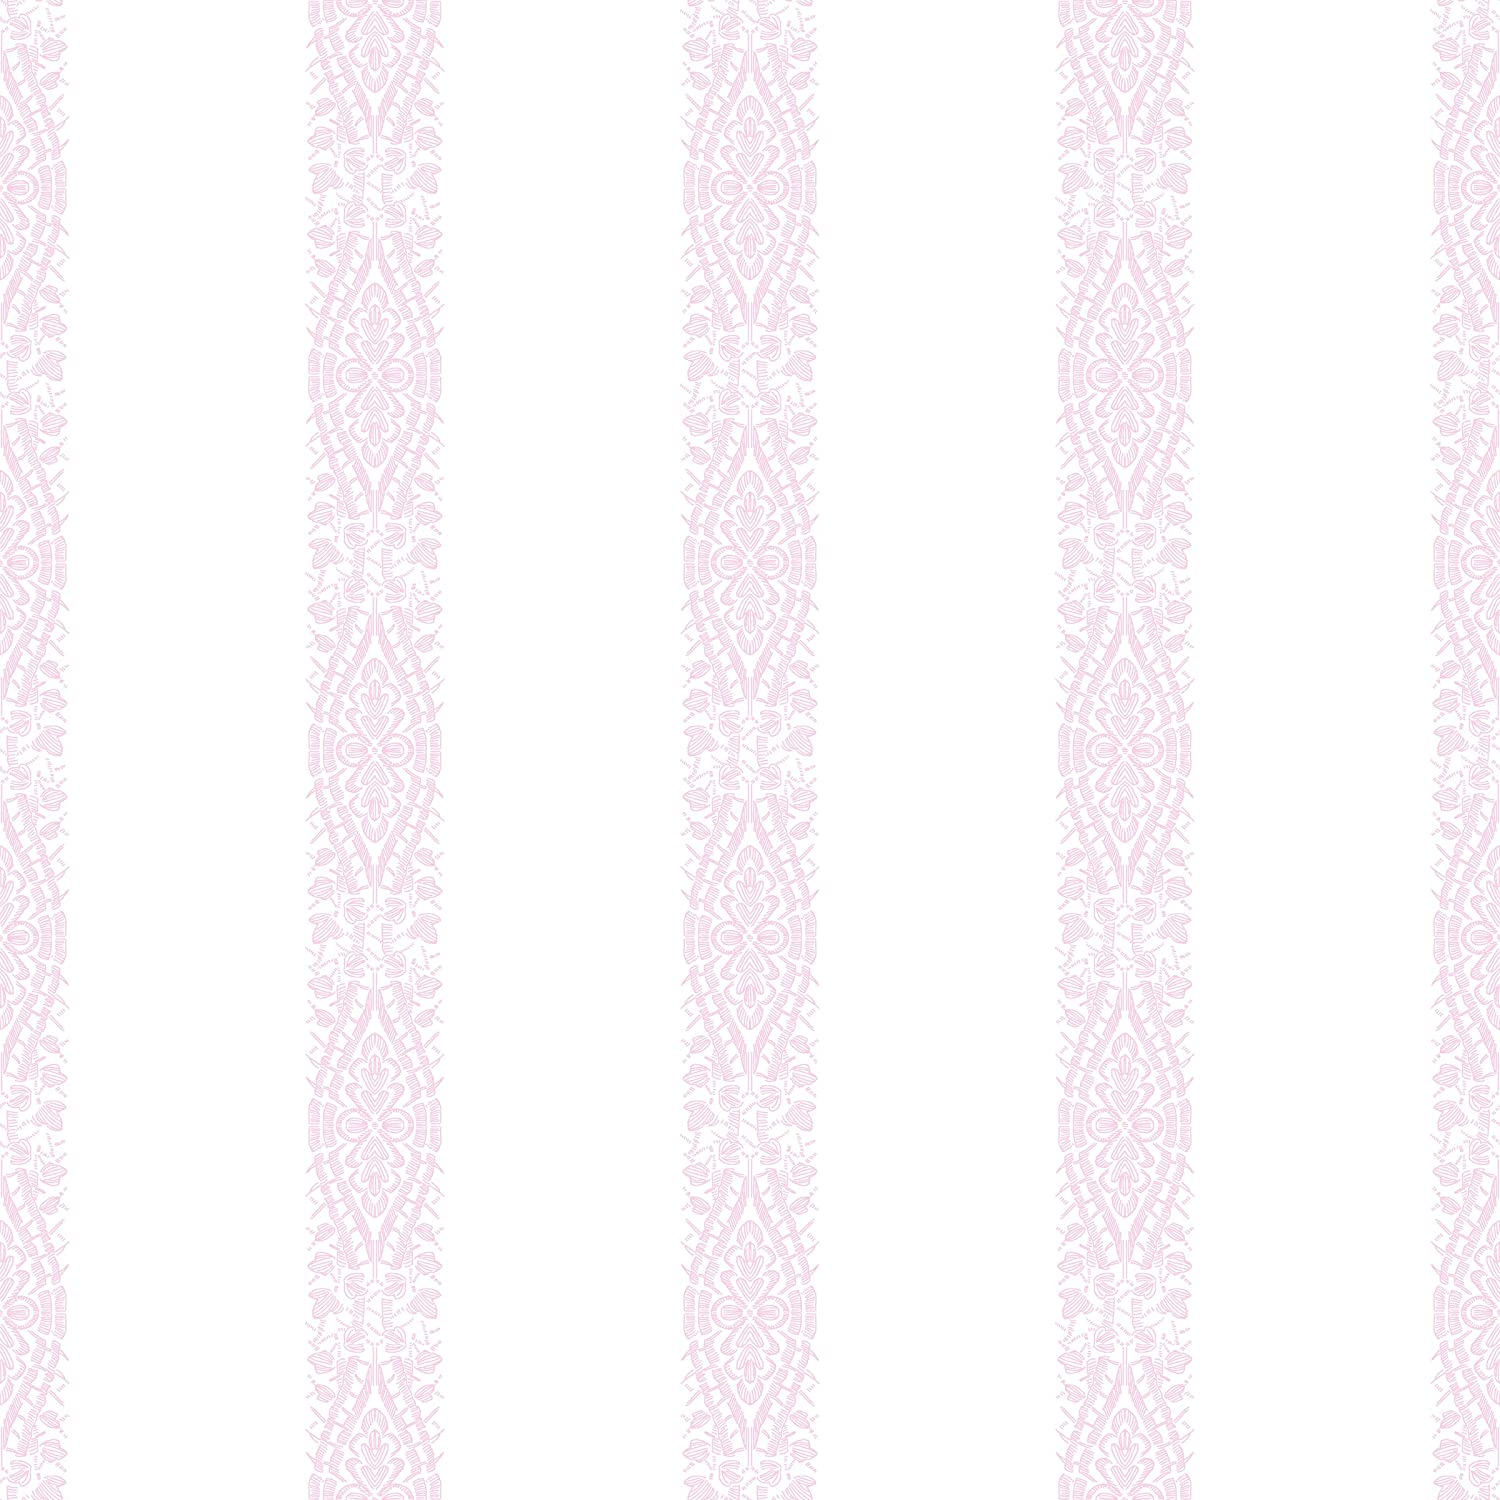 York Wallcoverings Ballerina Stripe Water-Activated Removable Wallpaper - Orchid  Spray with Water and Hang   Ultra Easy